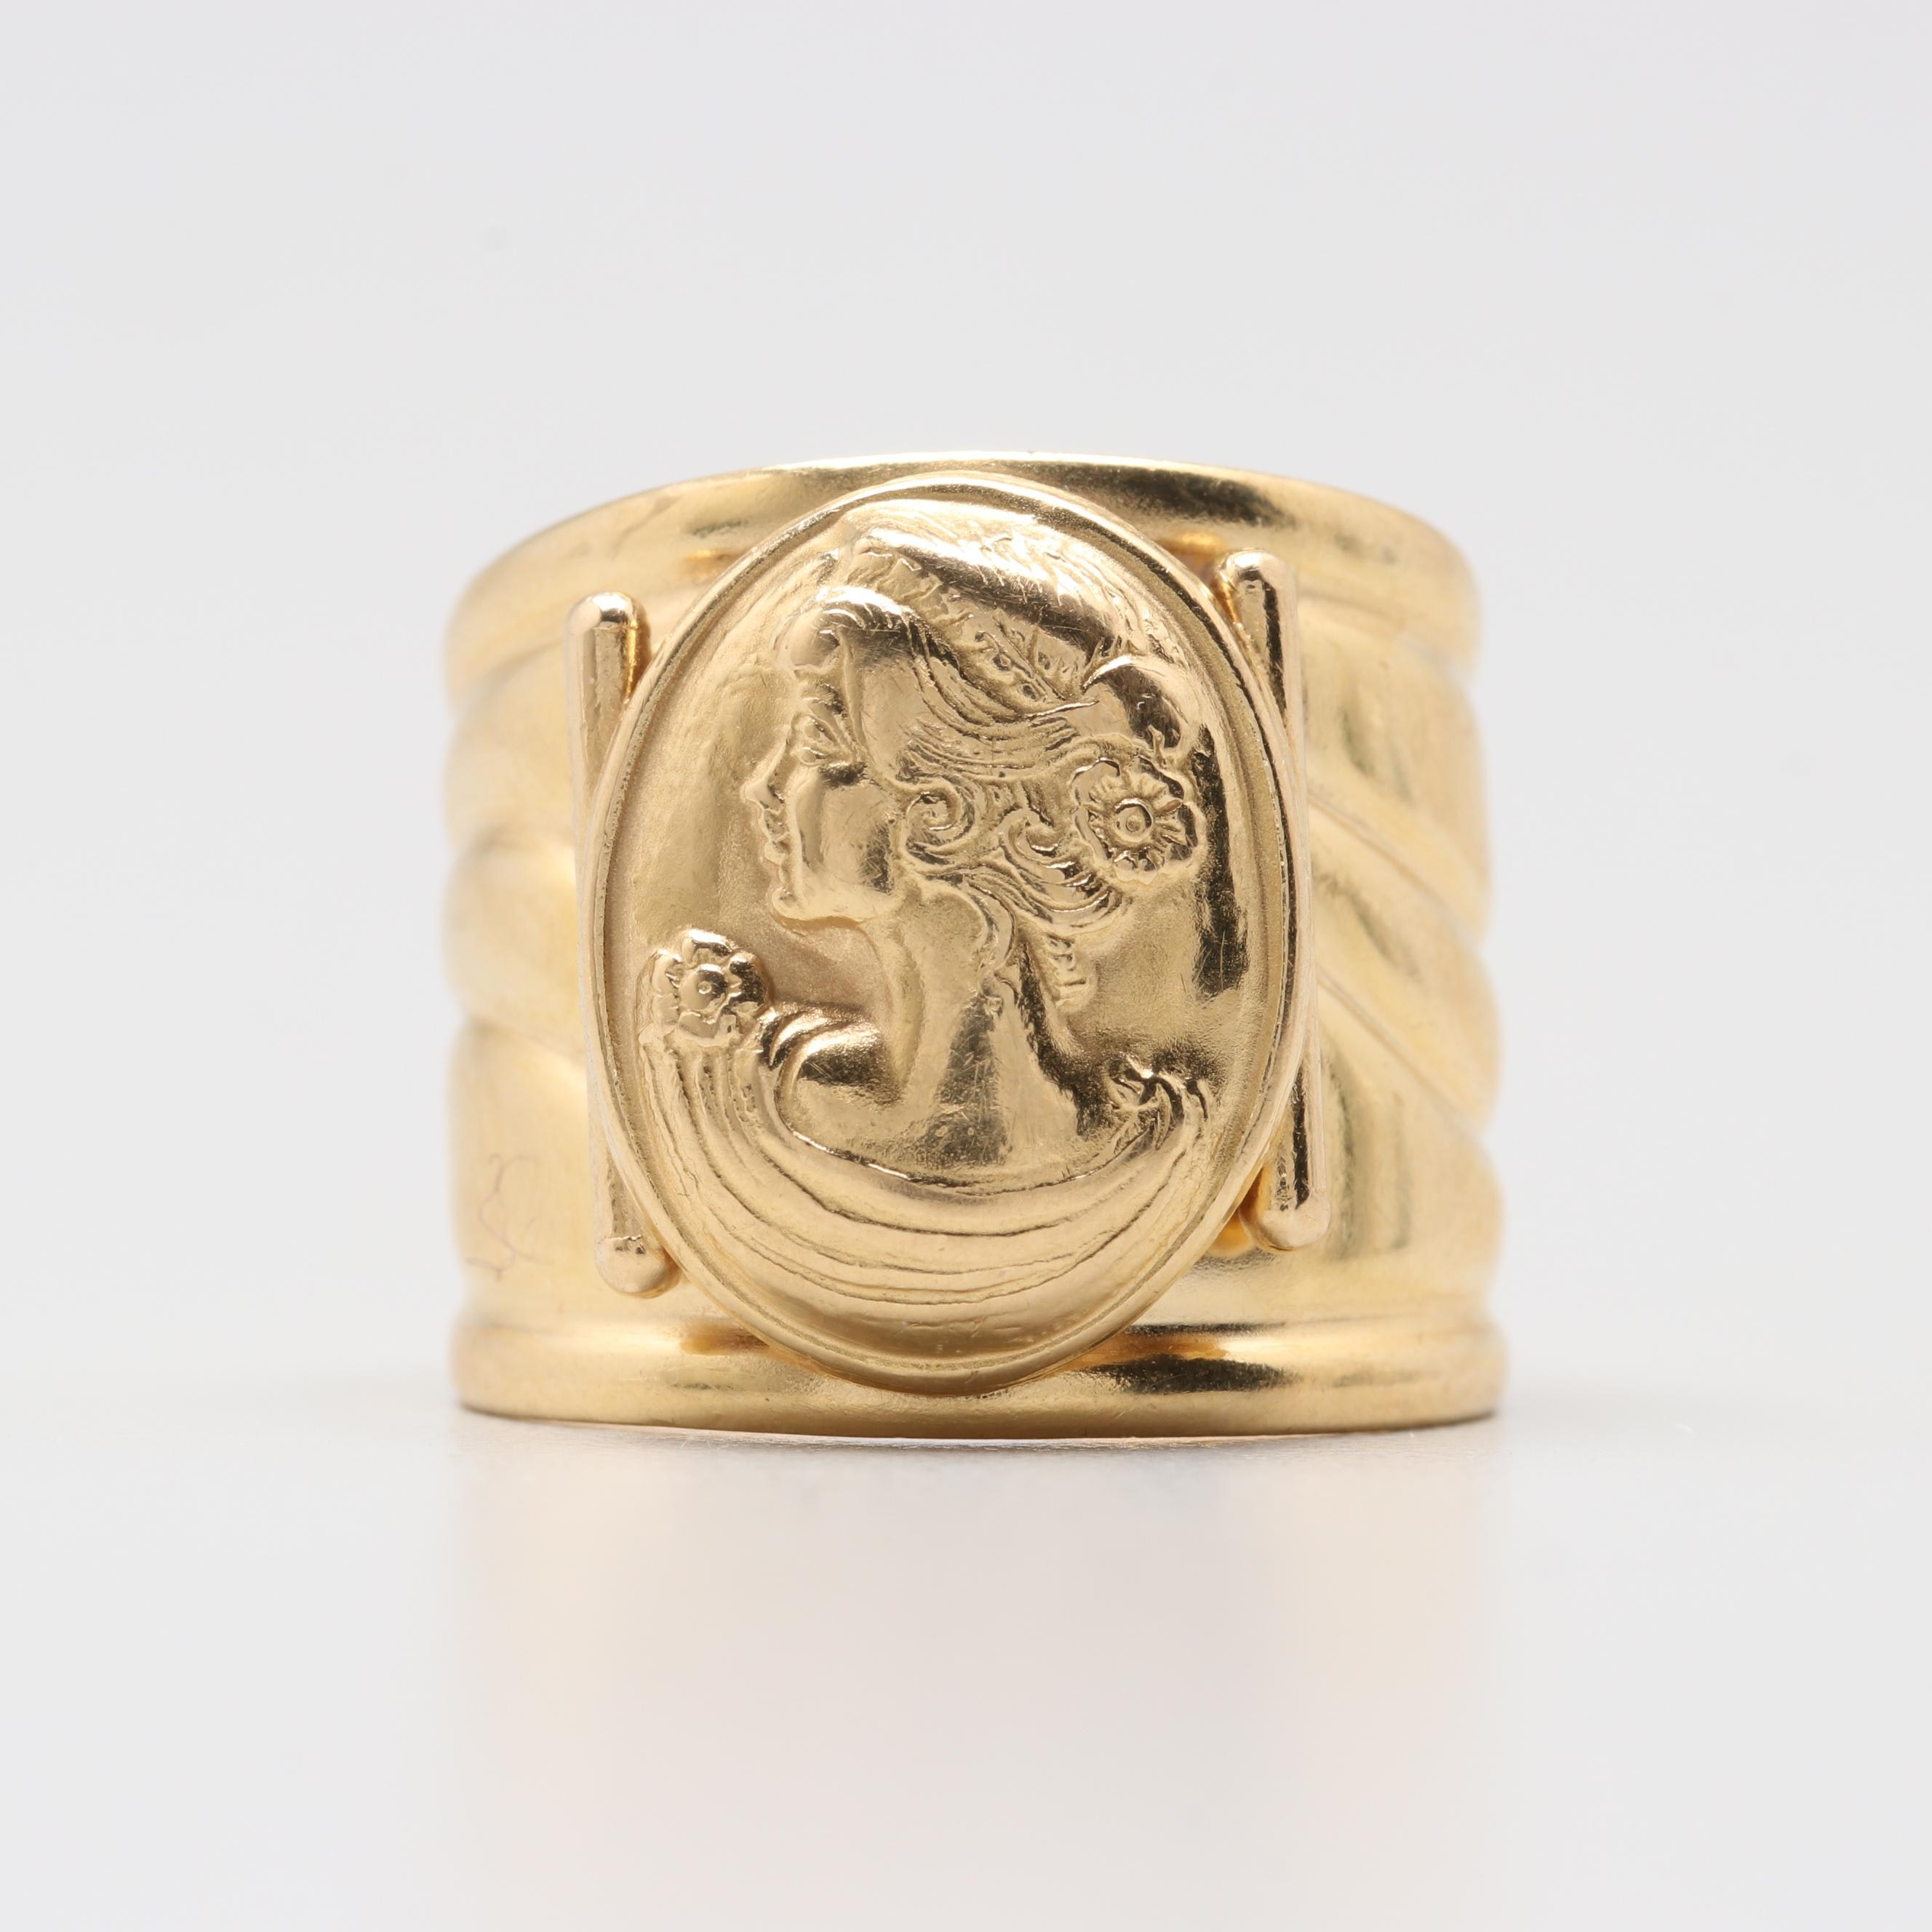 18K Yellow Gold Embossed Cameo Ring